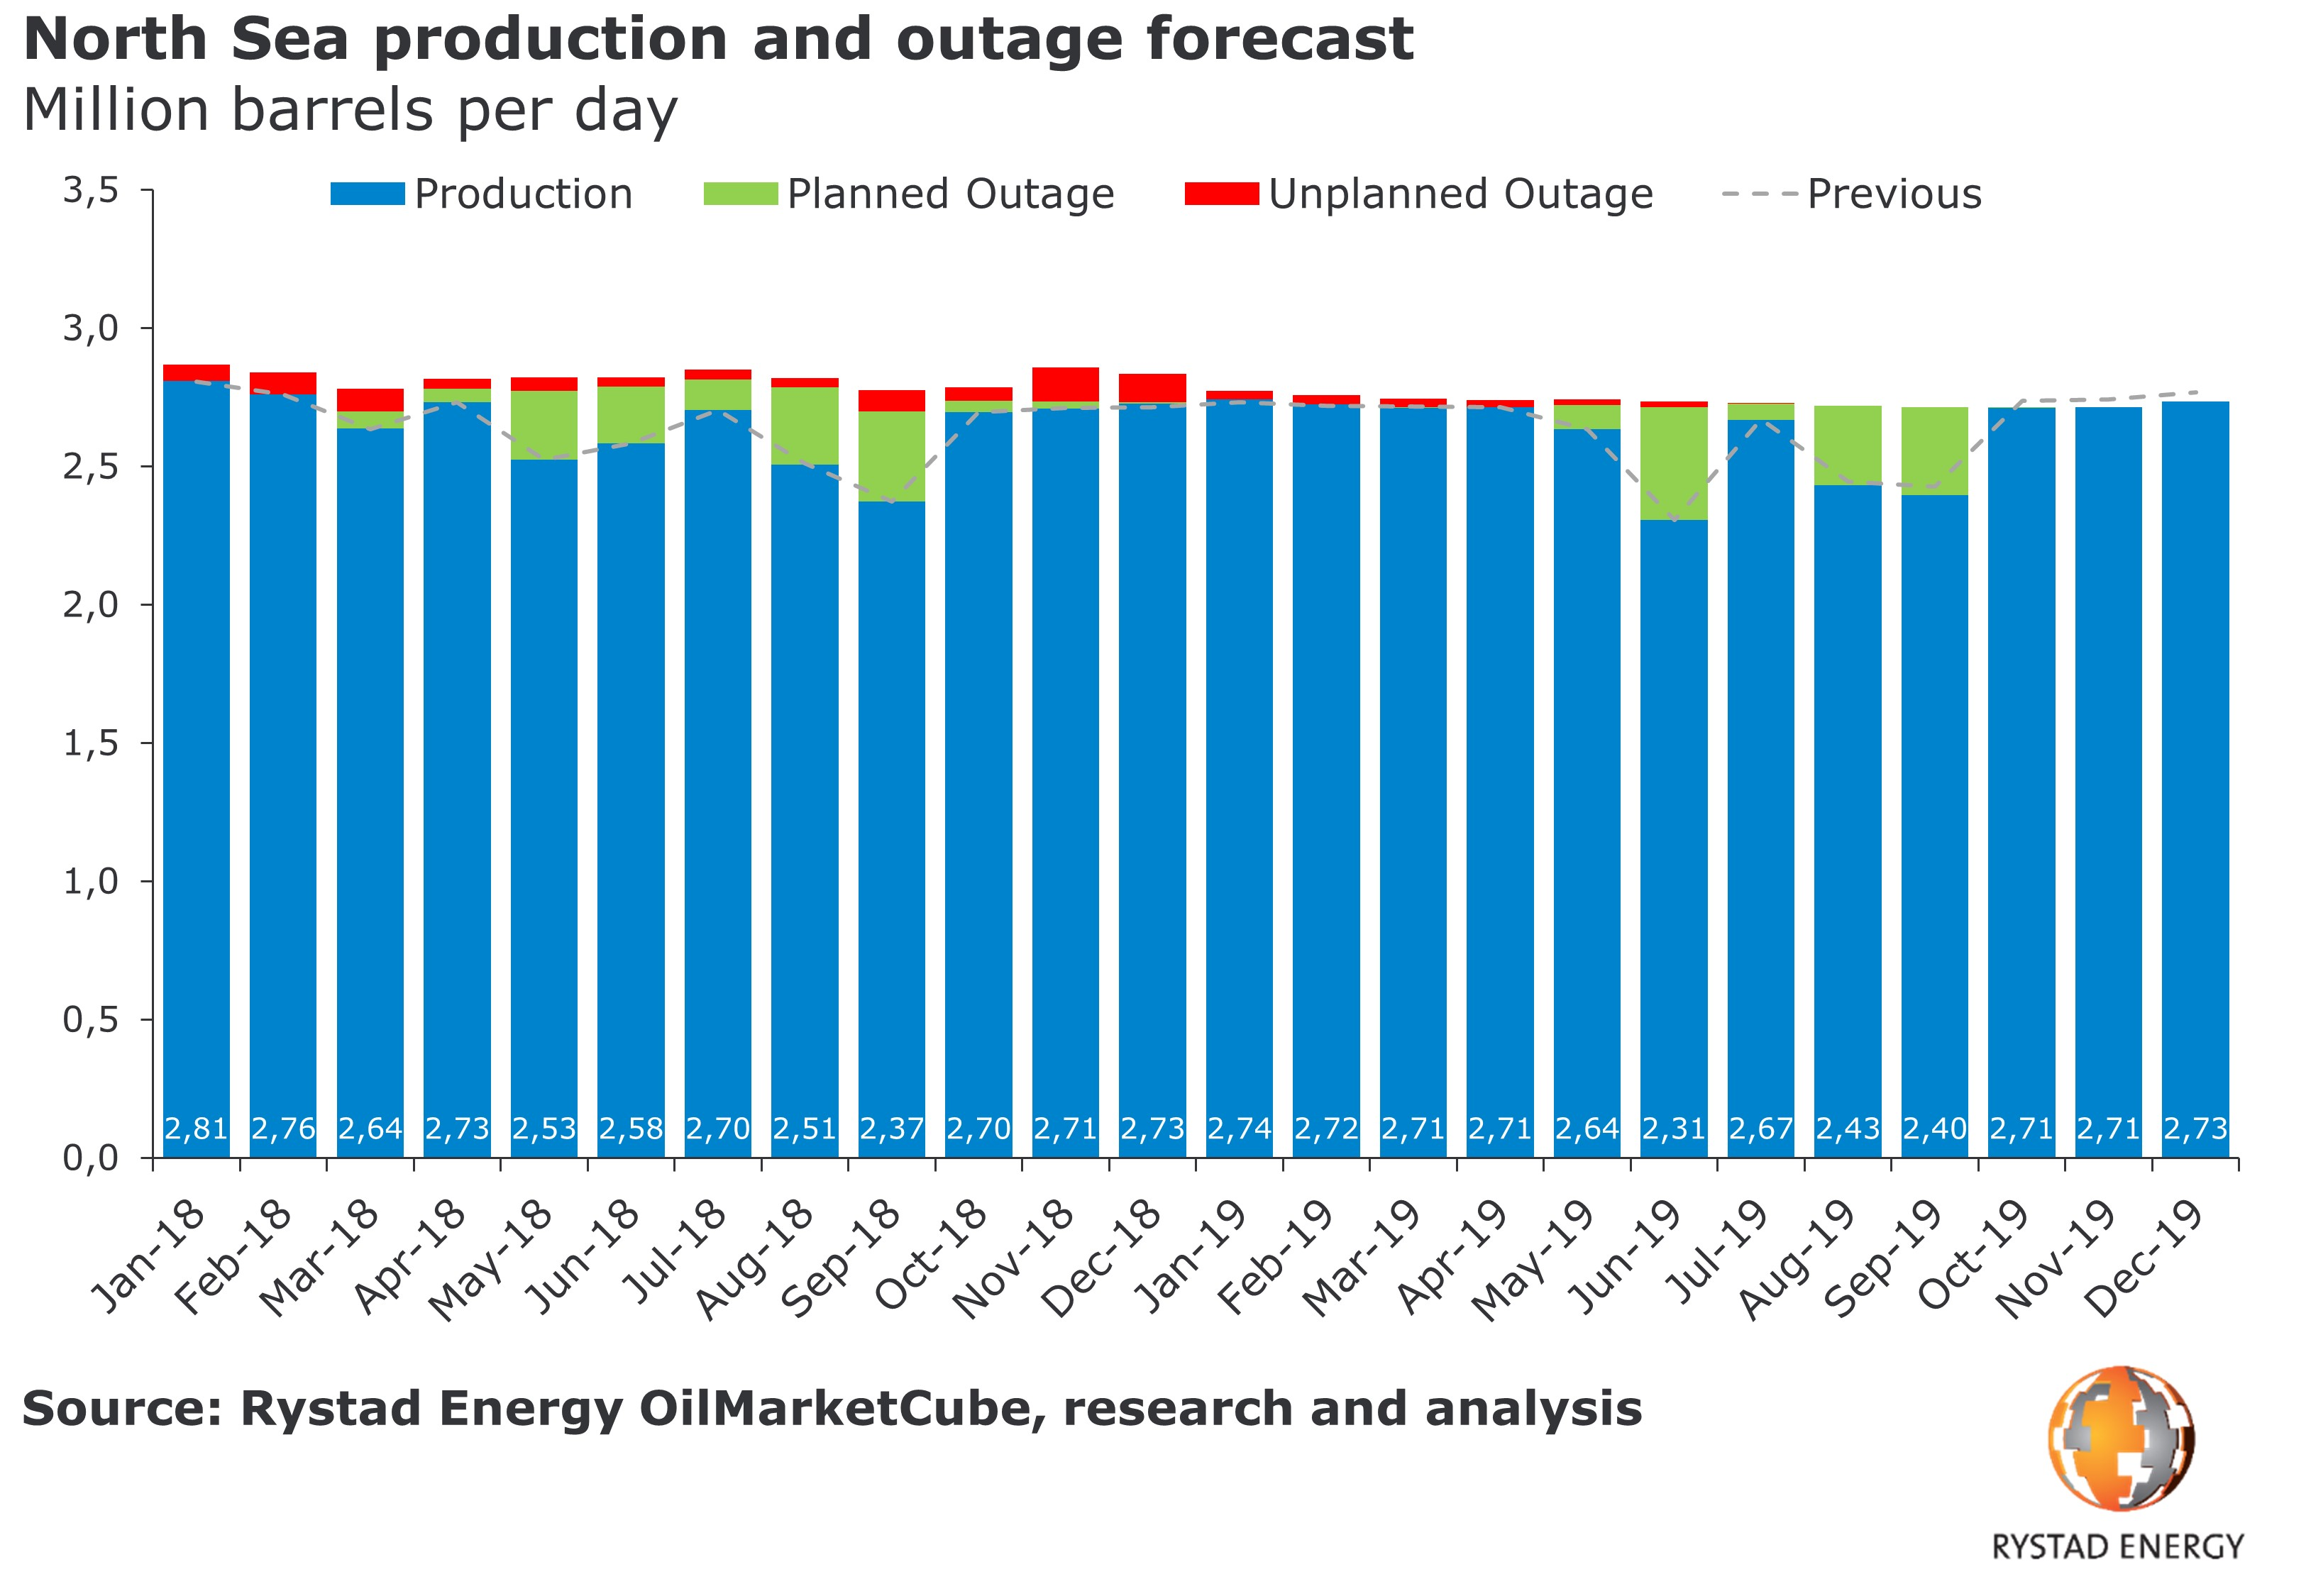 A bar chart showing the North Sea production and outage forecast in Million barrels per day for 2018 and 2019. Source: Rystad Energy OilMarketCube